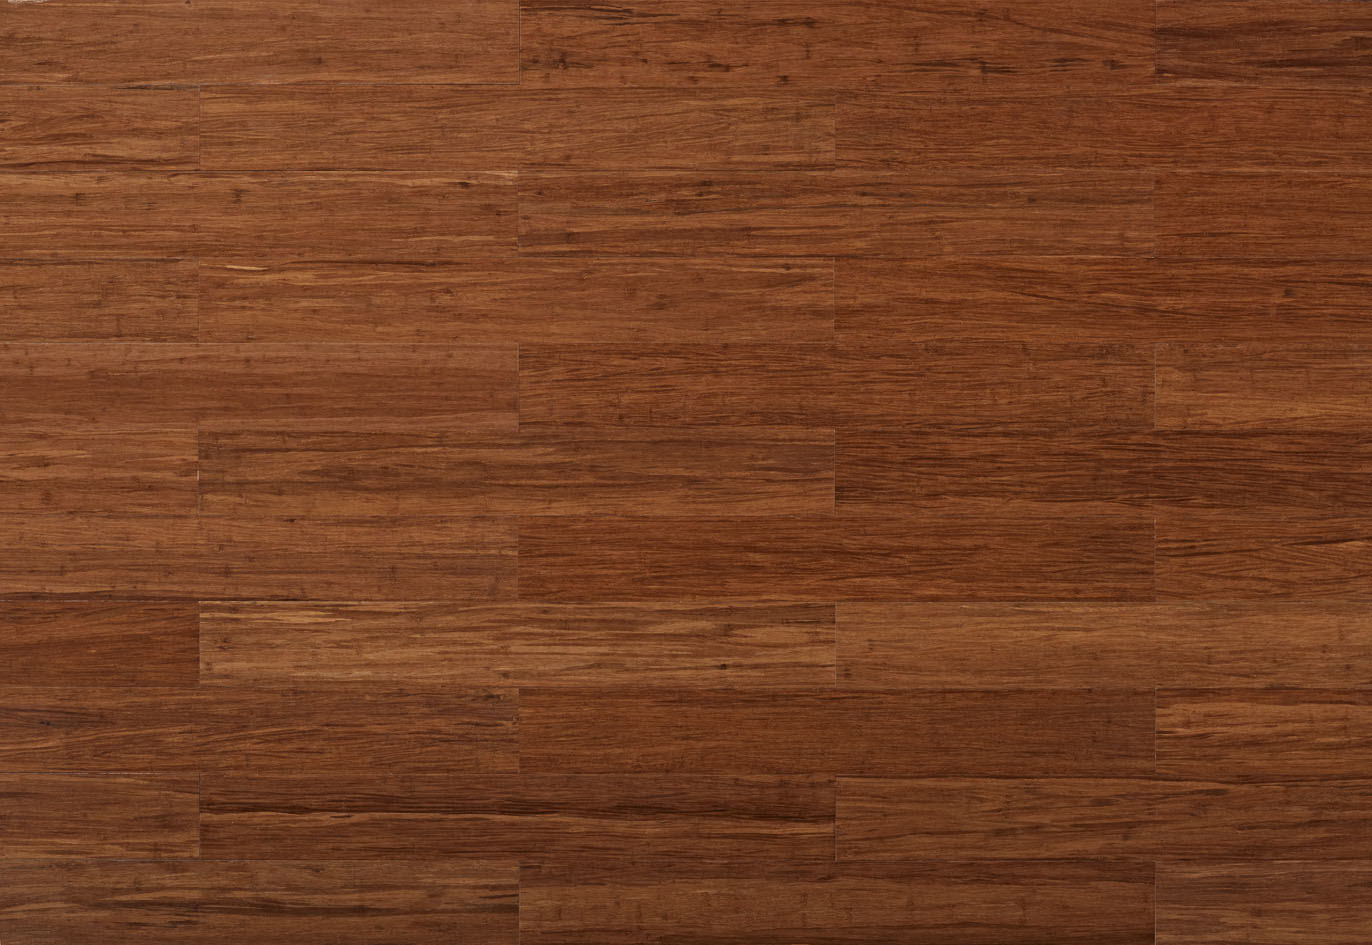 know you about to floor all need floors strand pros cons bamboo and flooring